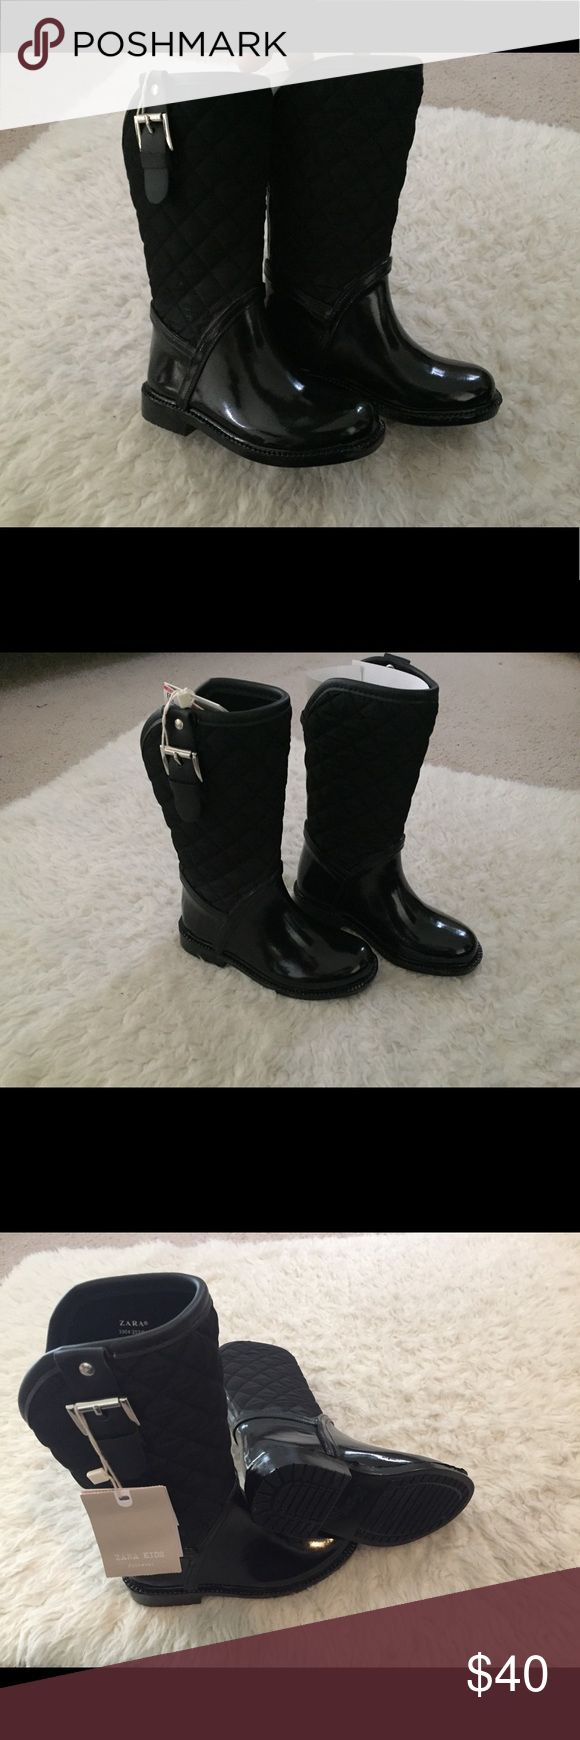 ZARA BOOTS FOR TODDLER GIRL ZARA RAINY BOOTS FOR TODDLER GIRL  BRAND NEW  WITH TAG  EUROPE SIZE 26/27 USA SIZE 9/ 9/5 Zara Shoes Rain & Snow Boots